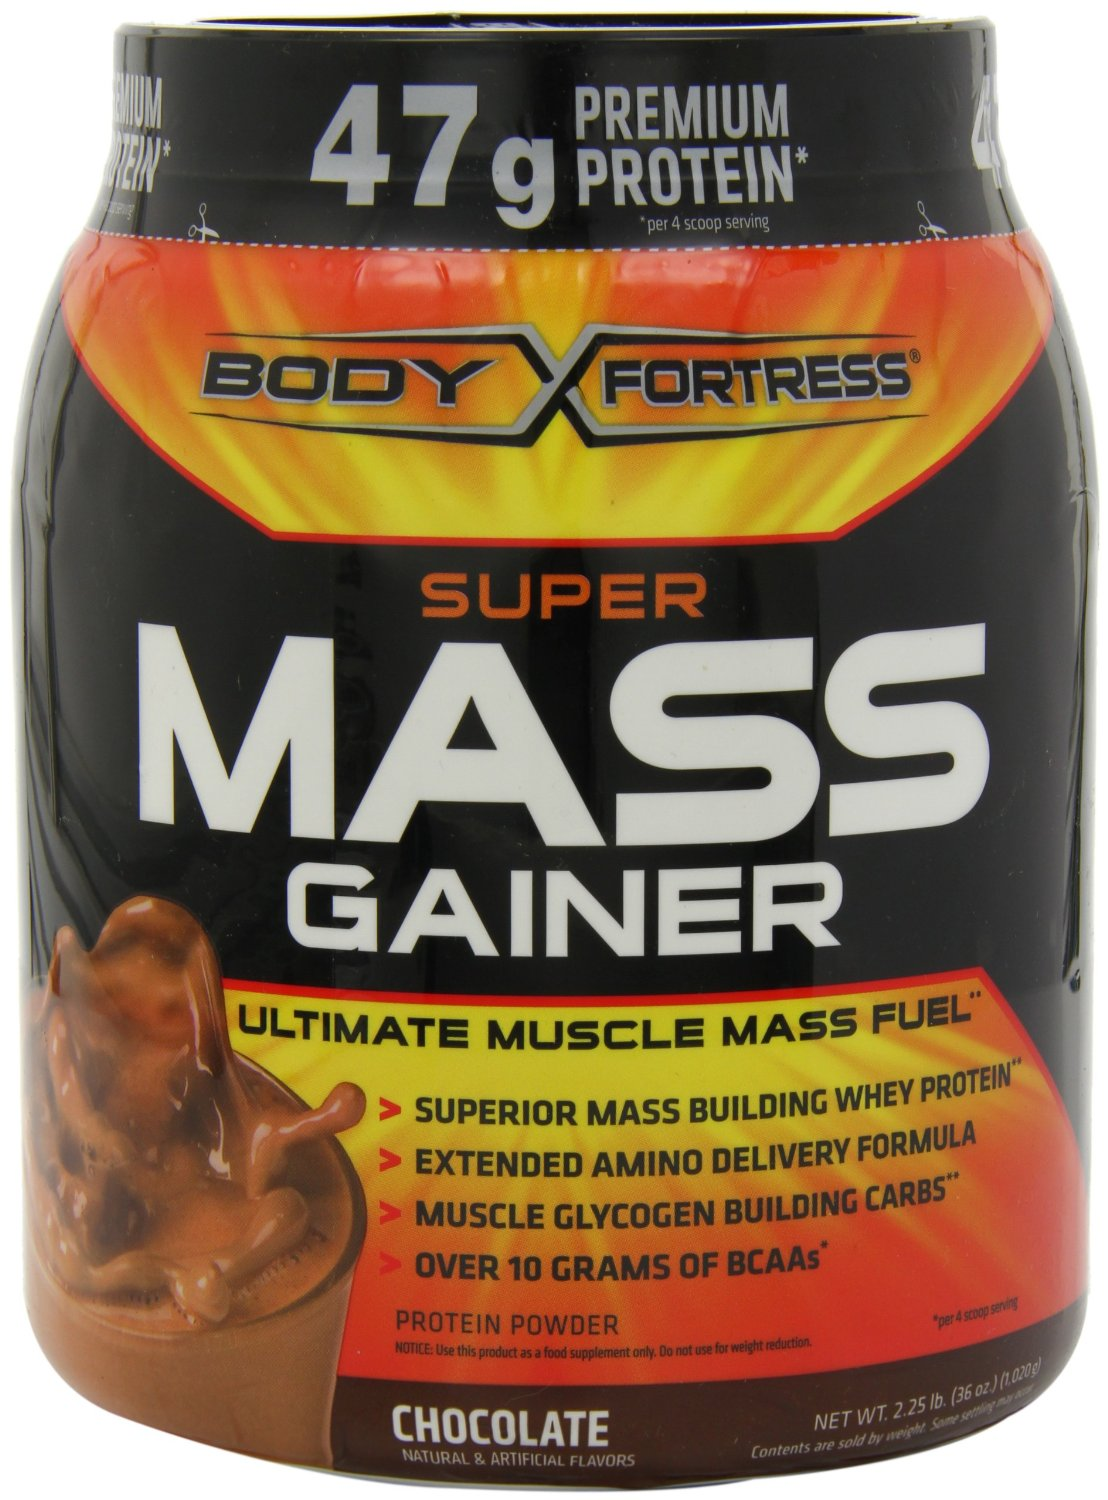 Body Fortress - Super Mass Gainer (2.25 lb) $12.94 Free Shipping